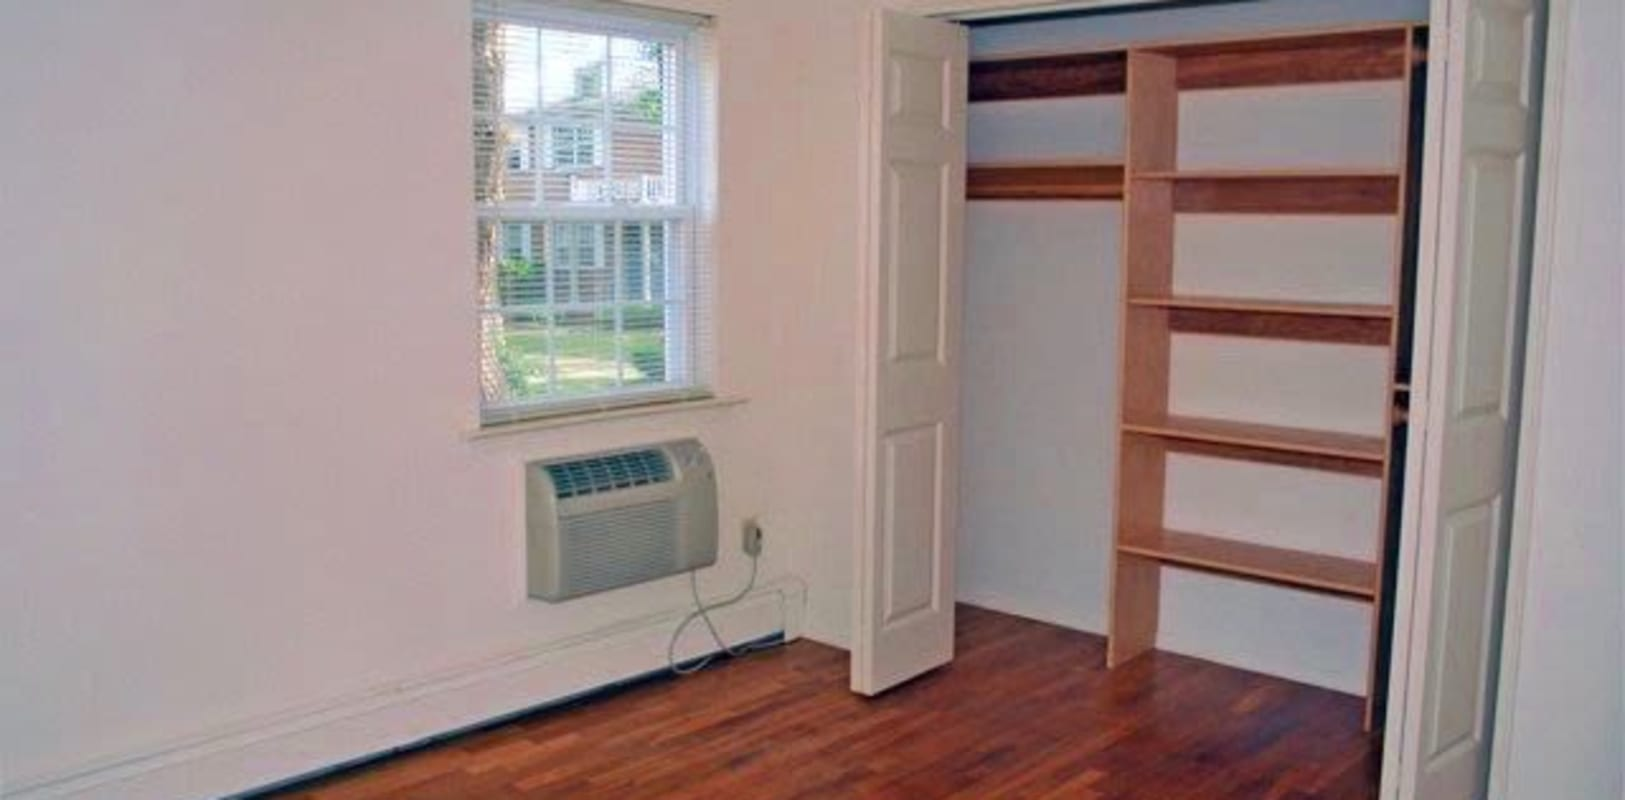 Bedroom with air conditioning unit and wooden shelves in closet for storage at Park Lane Apartments in Little Falls, New Jersey